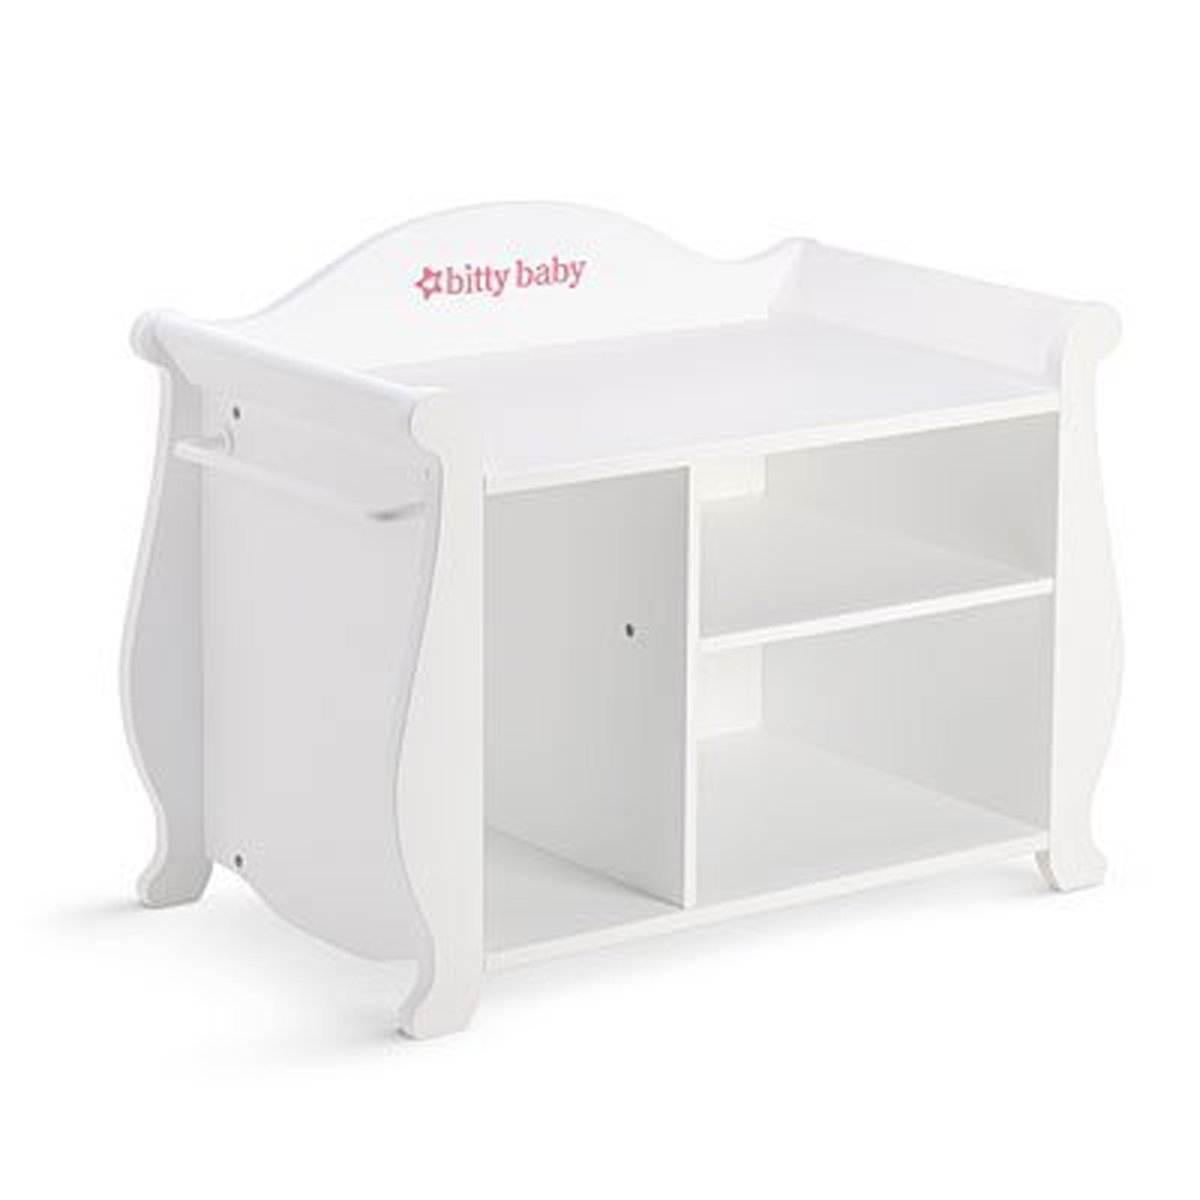 Charming and Cute Bitty Baby Changing Table: Espresso Changing Table | Bitty Baby Changing Table | Ikea Gulliver Changing Table